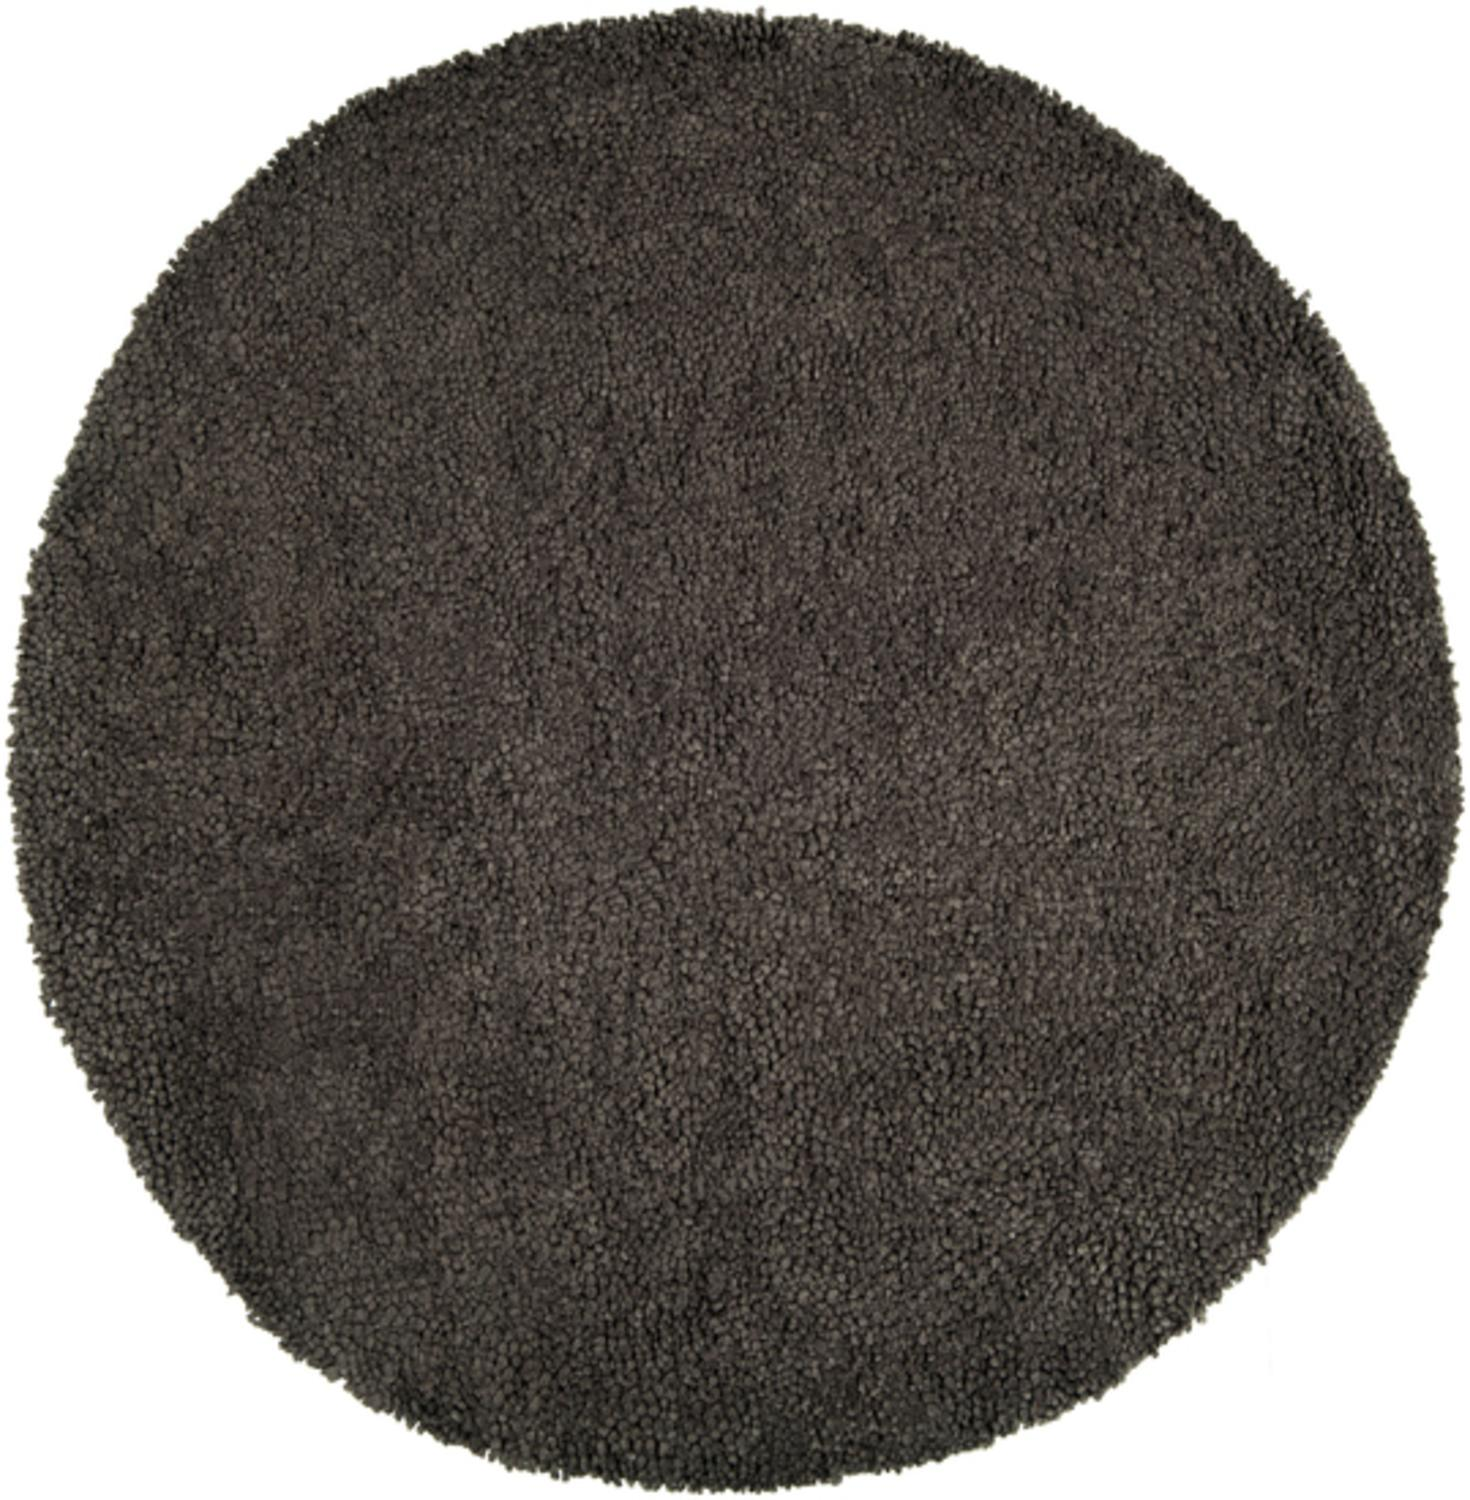 8' Solid Espresso Brown Hand Woven Round New Zealand Wool Shag Area Throw Rug